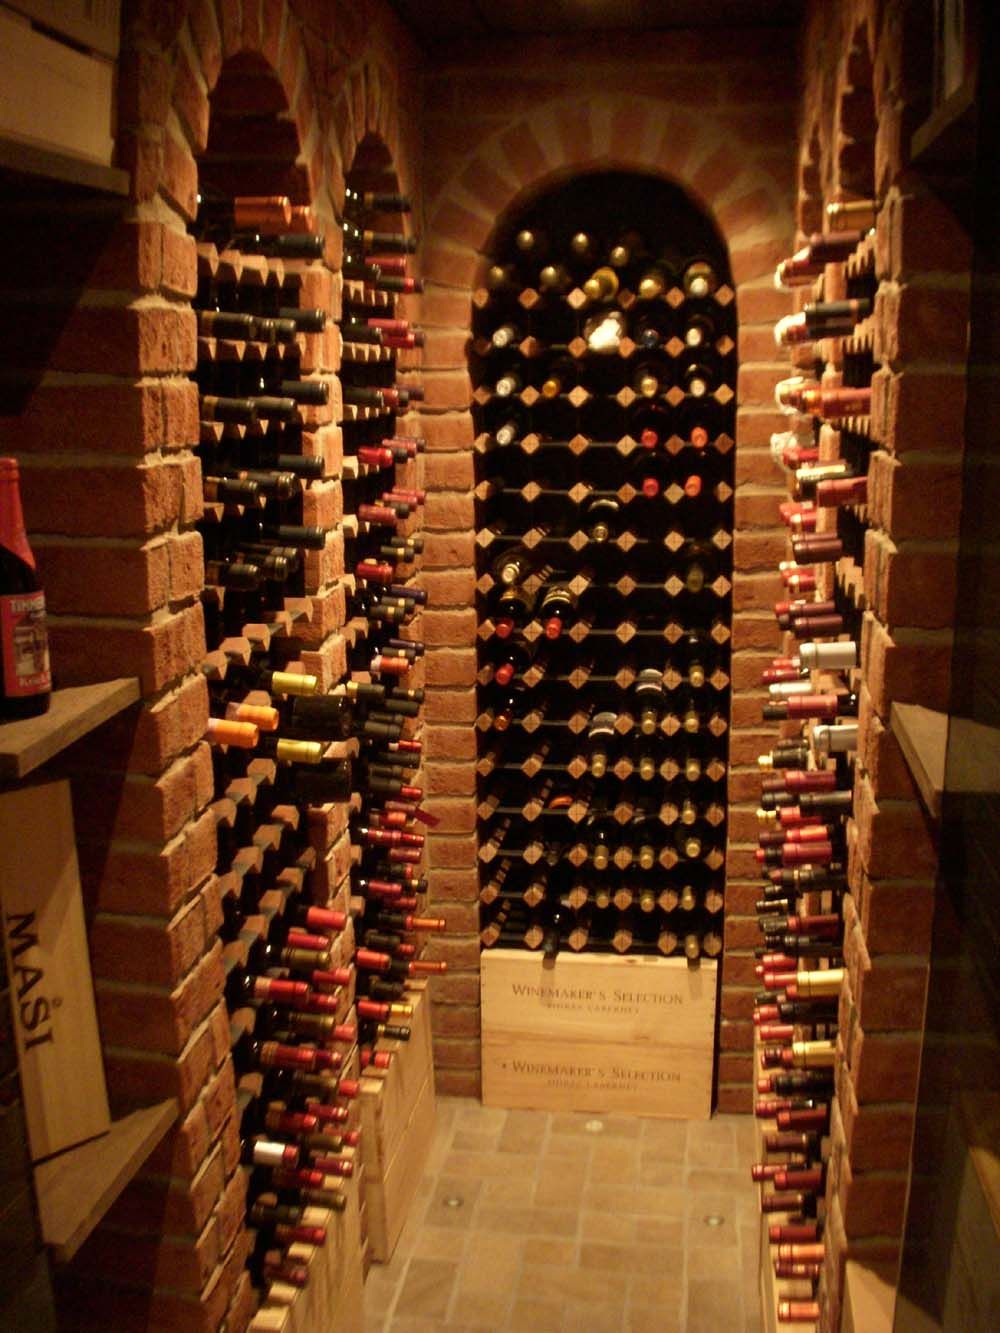 Private wine cellar in Sweden featuring BOXX Wine Racks. Very nice combination of bricks, tiles